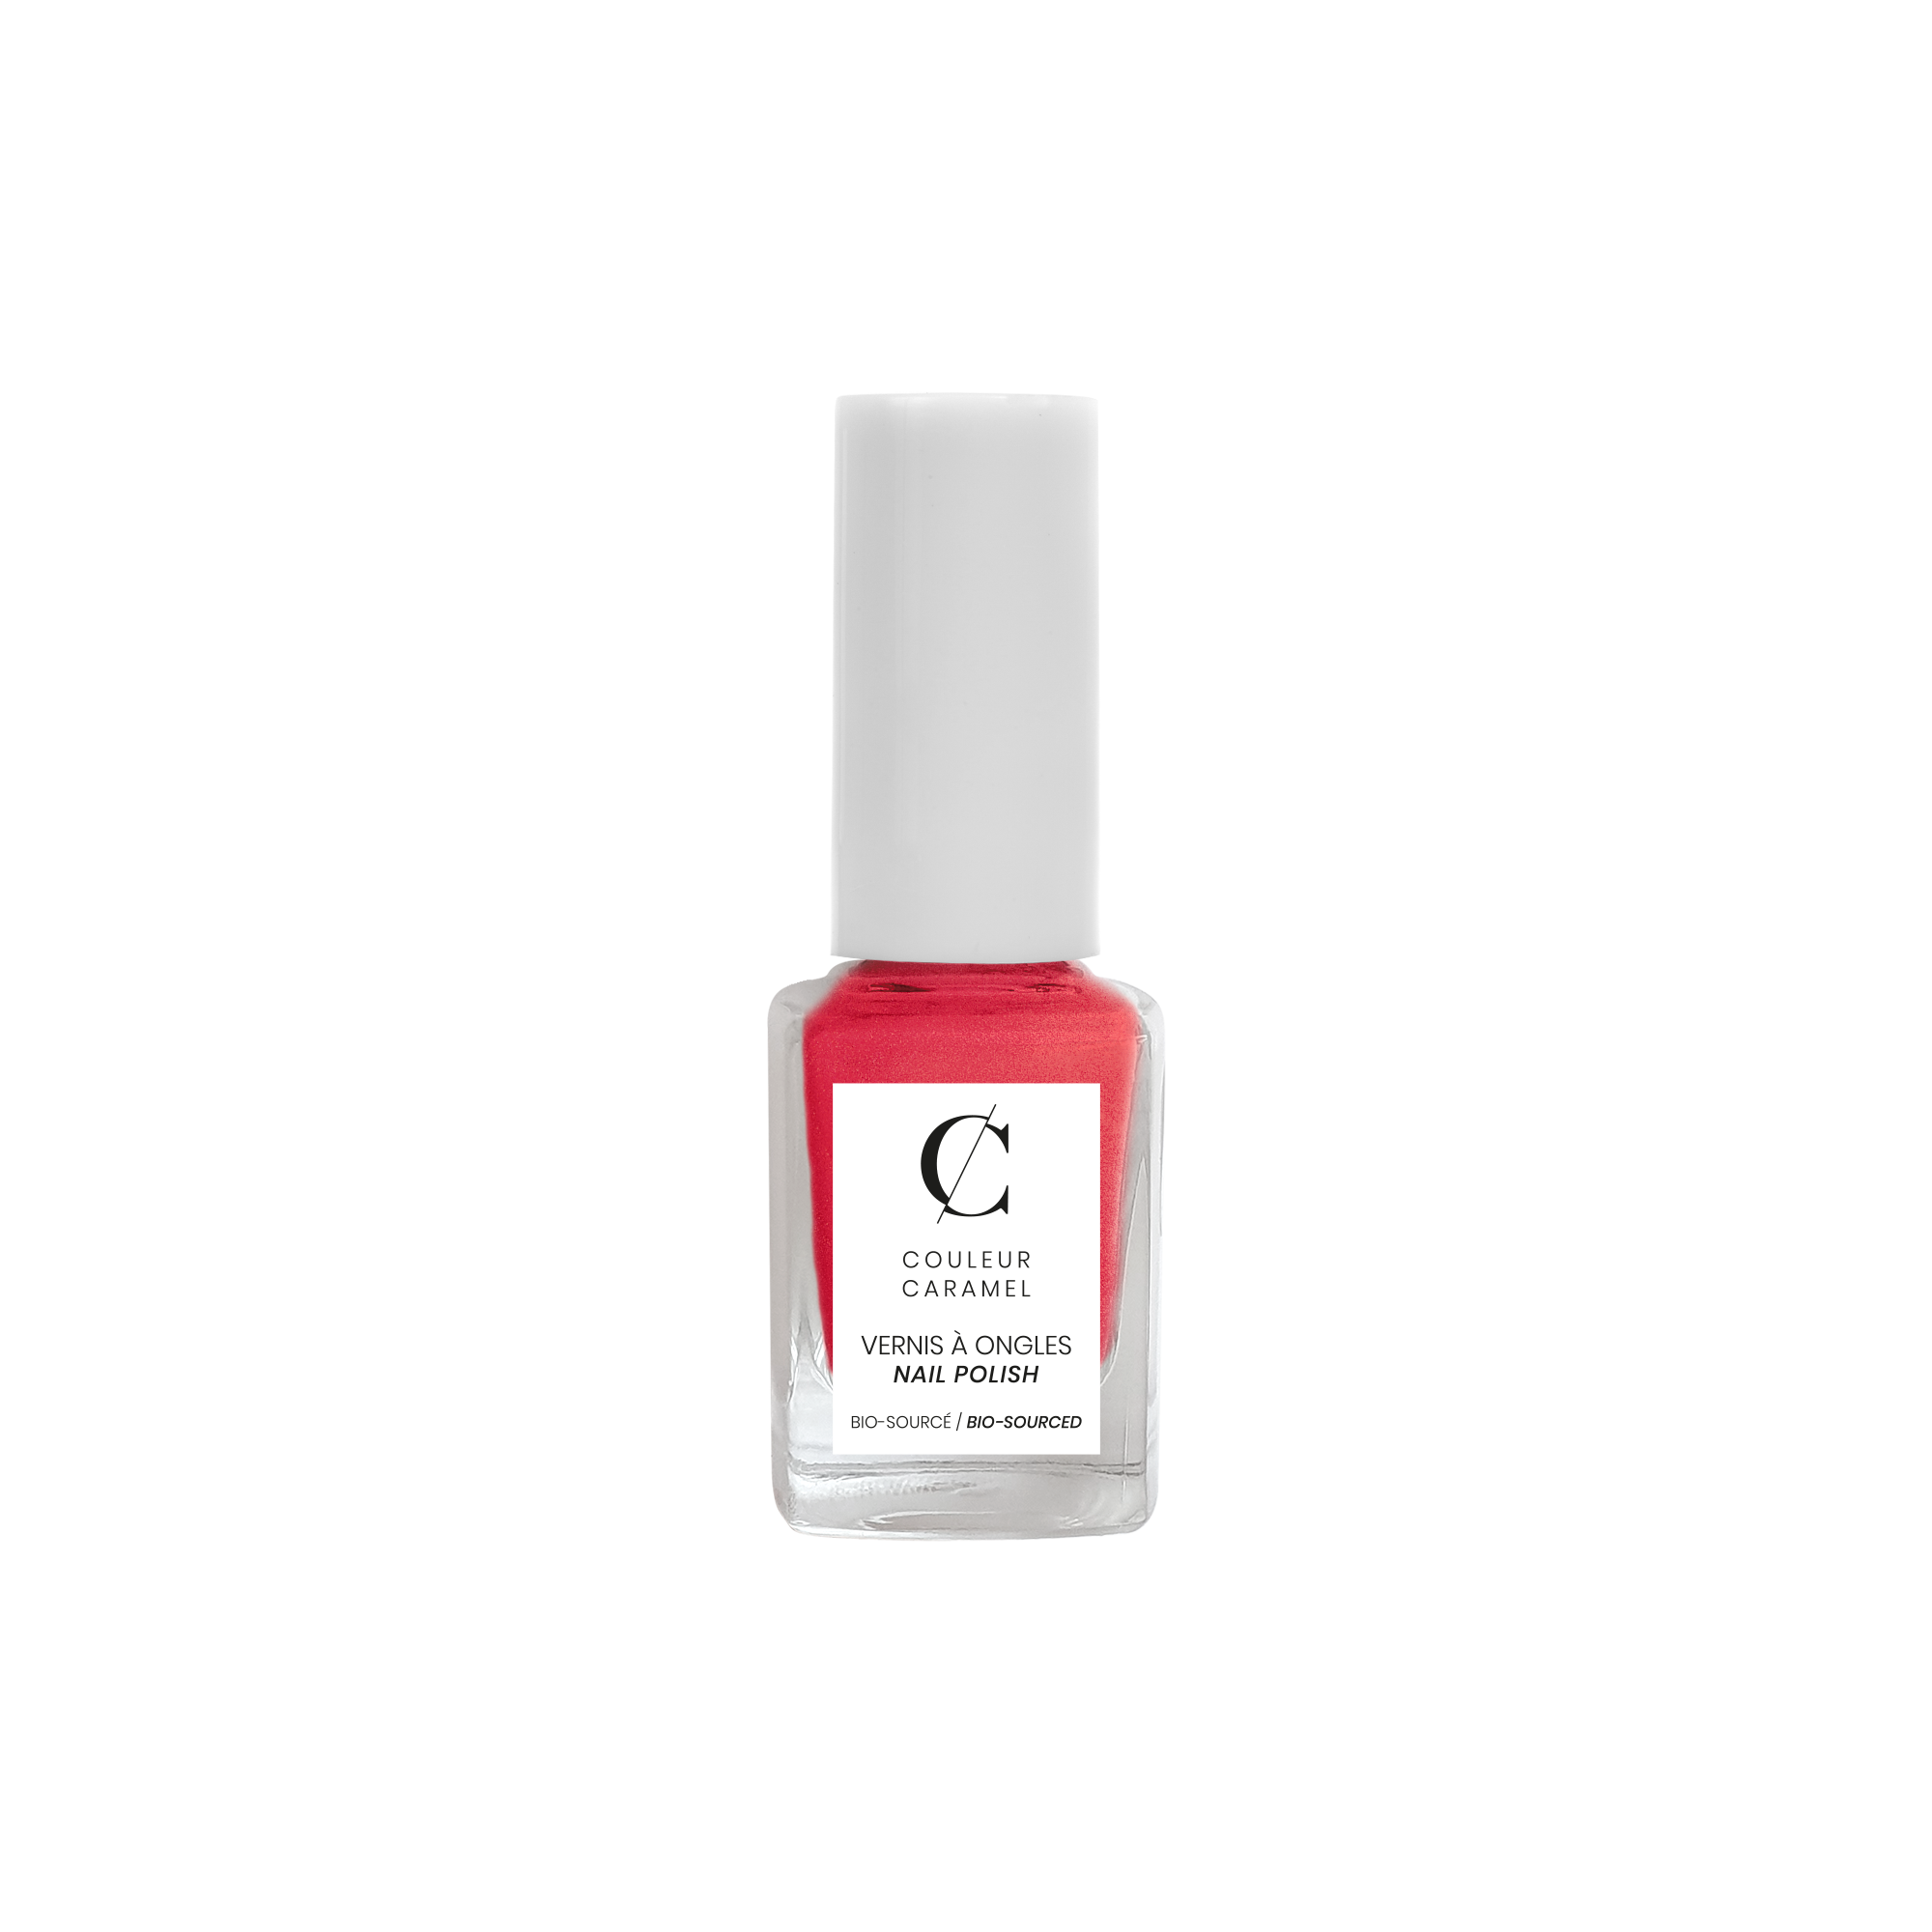 VERNIS À ONGLES N 26 rouge marrakech